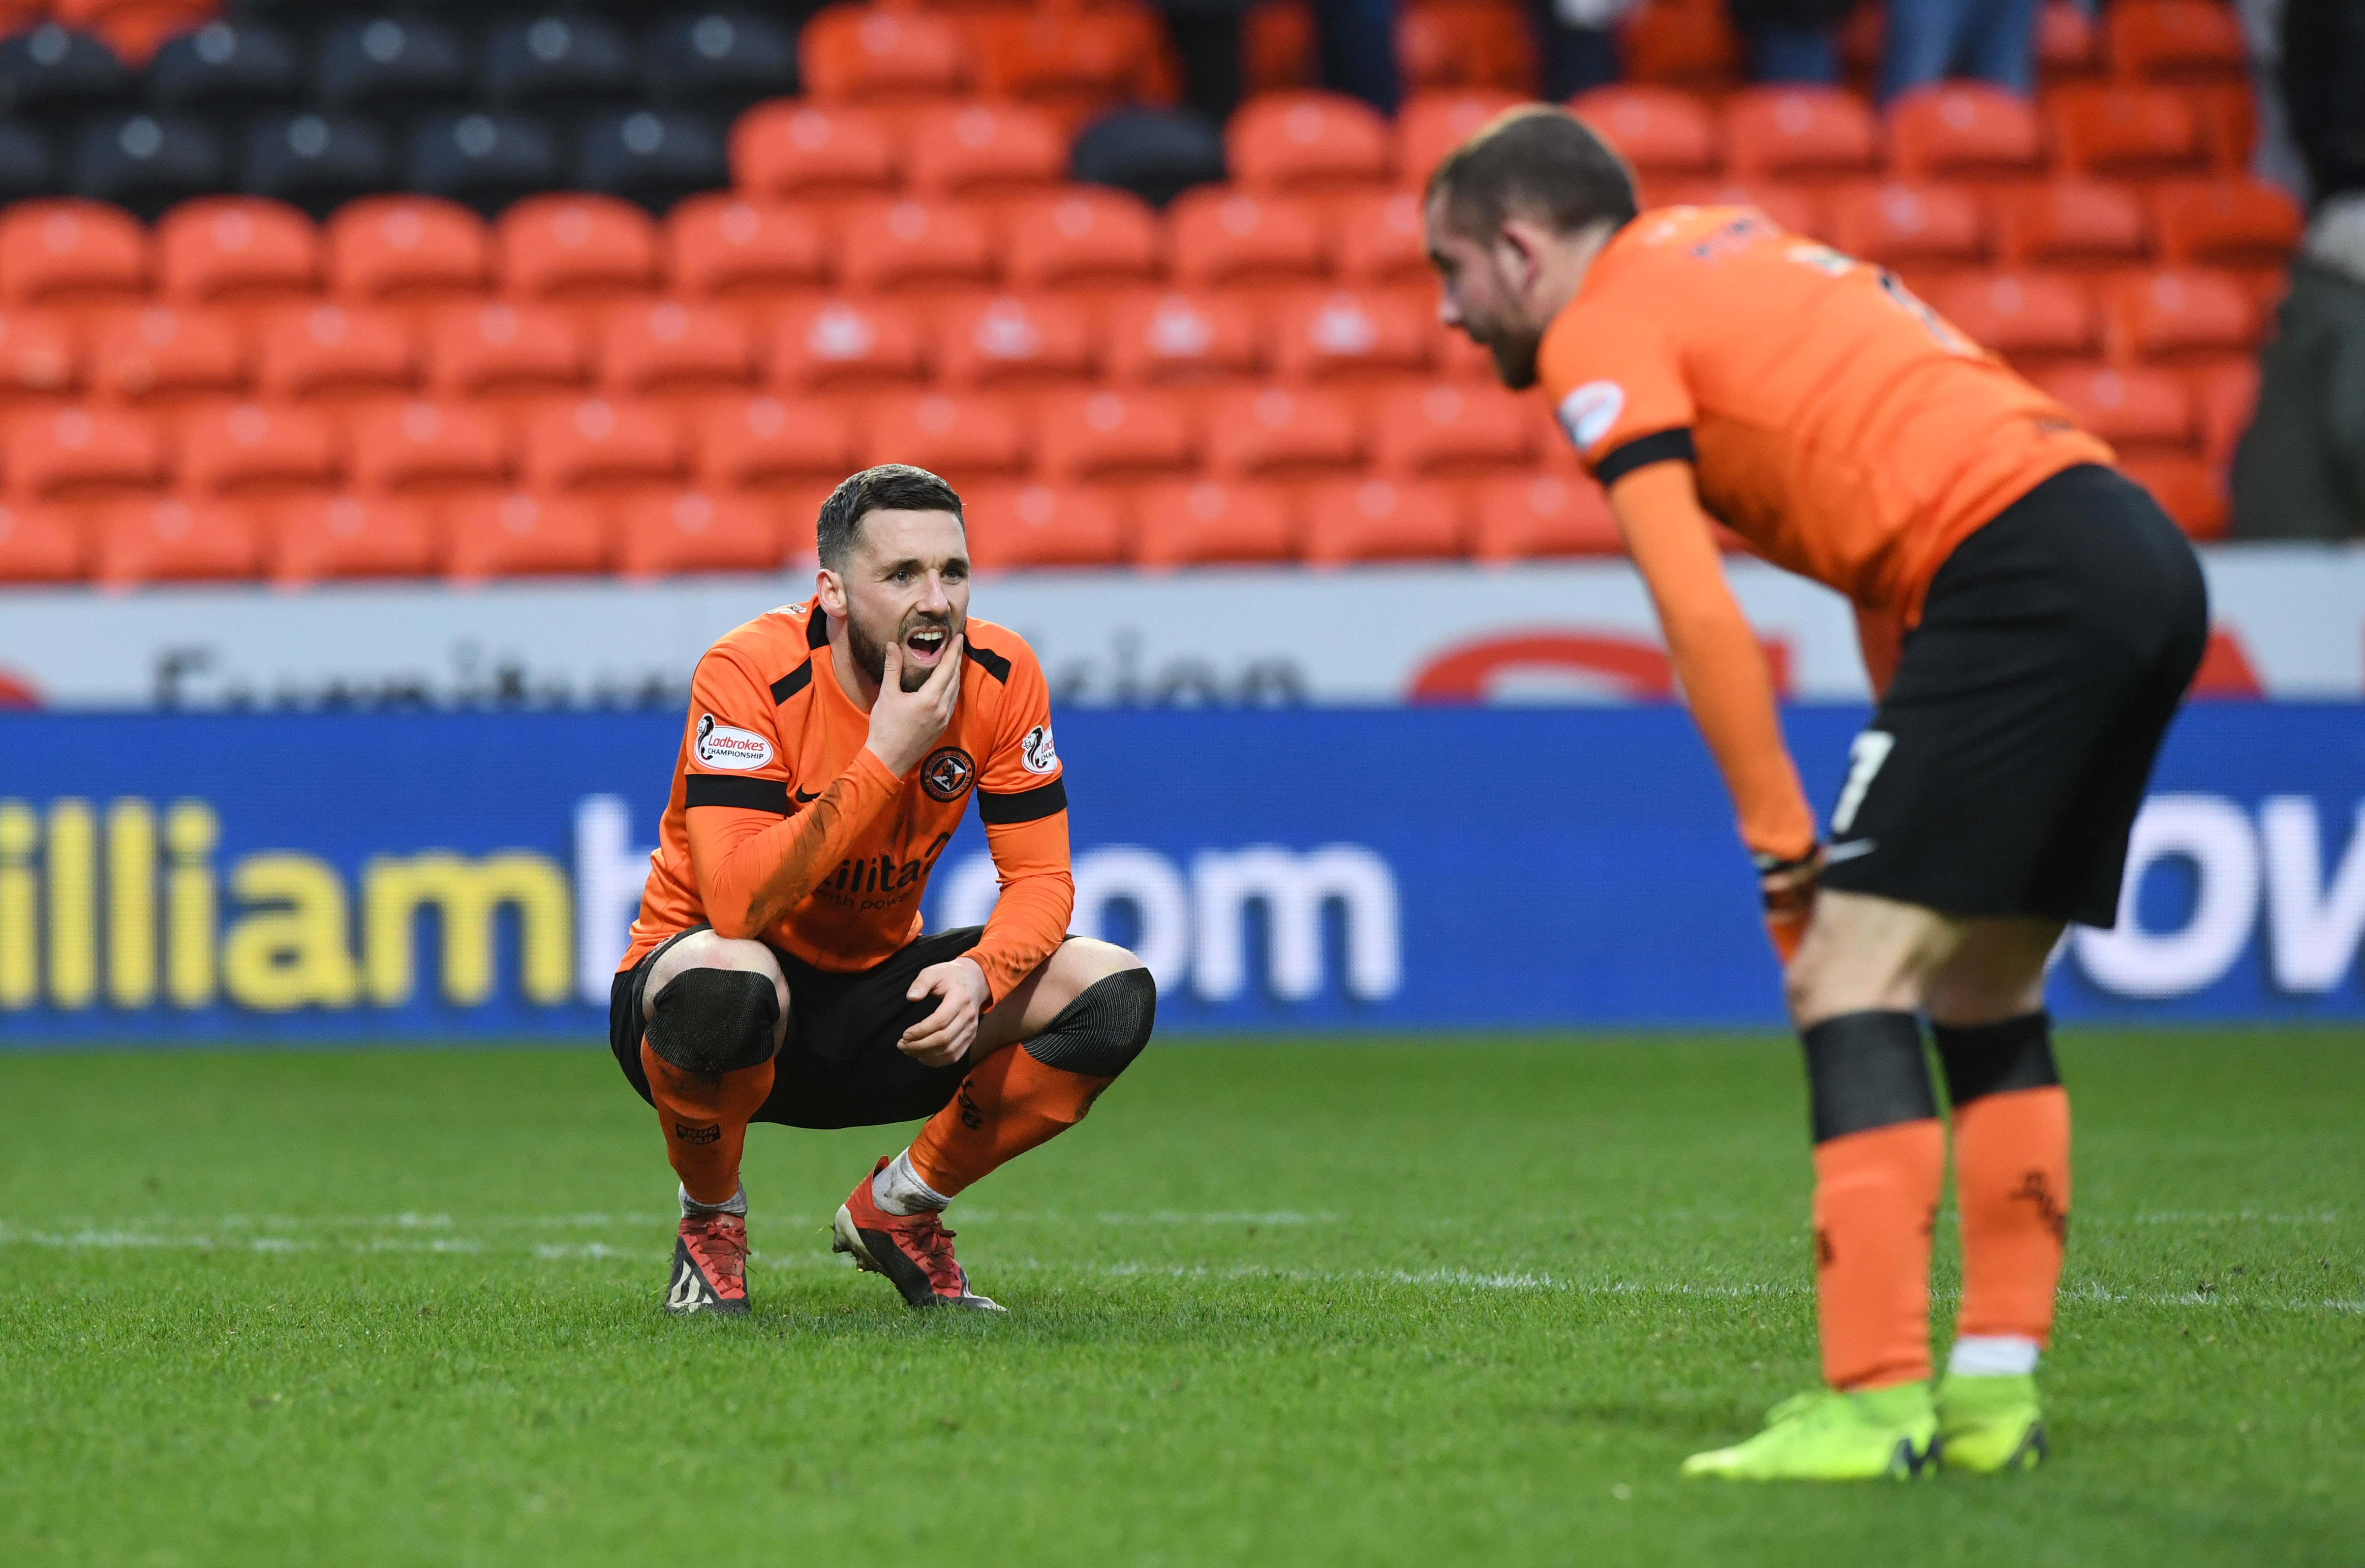 United players Nicky Clark and Paul McMullan look dejected at full-time.